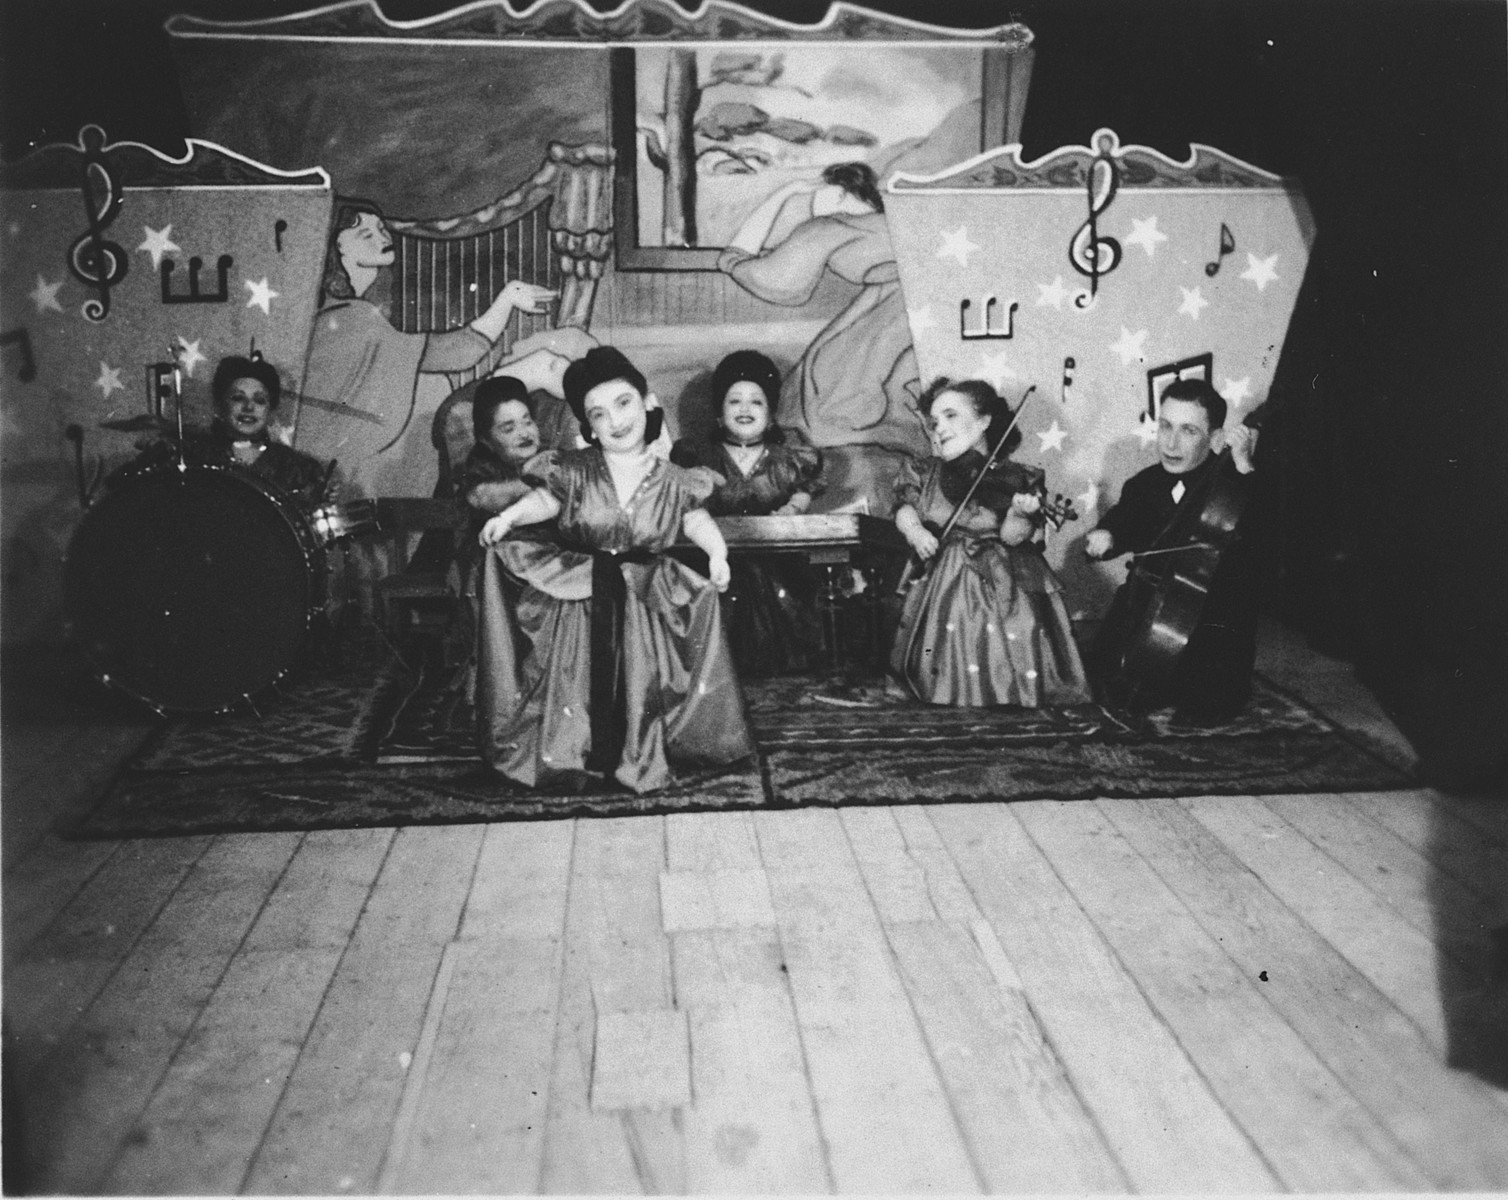 Members of the Ovici family, a family of Jewish dwarf entertainers known as the Lilliput Troupe, who survived Auschwitz, perform on stage.